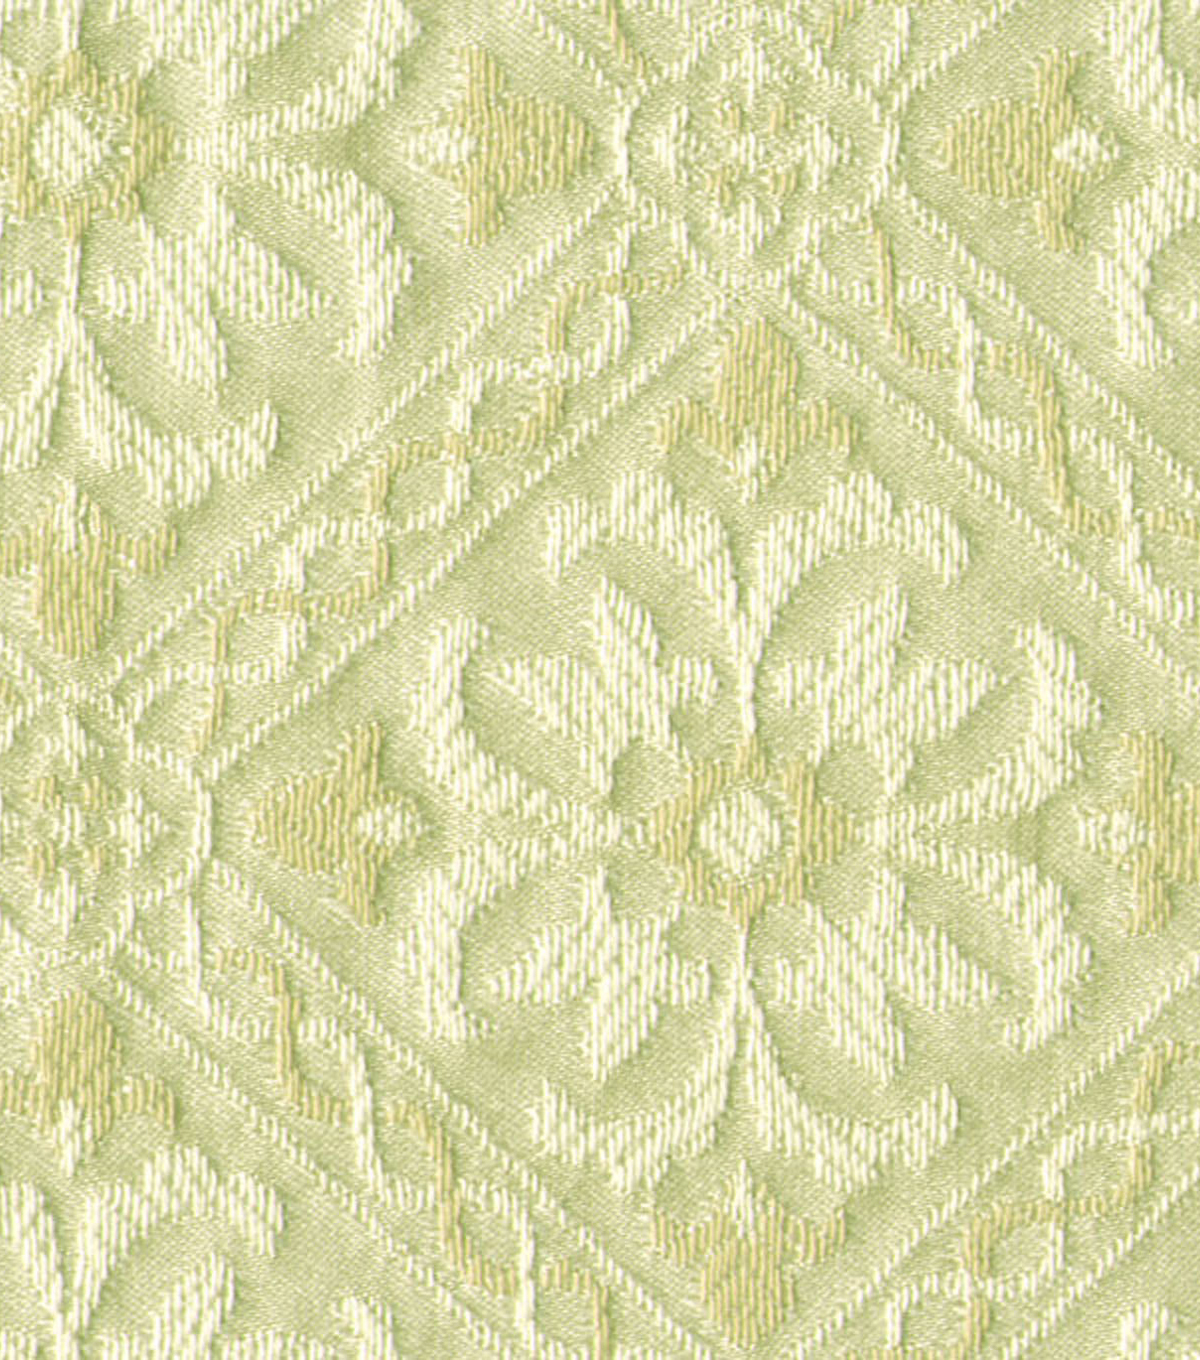 Home Decor 8\u0022x8\u0022 Fabric Swatch-Barrow M6401-5806 Oyster